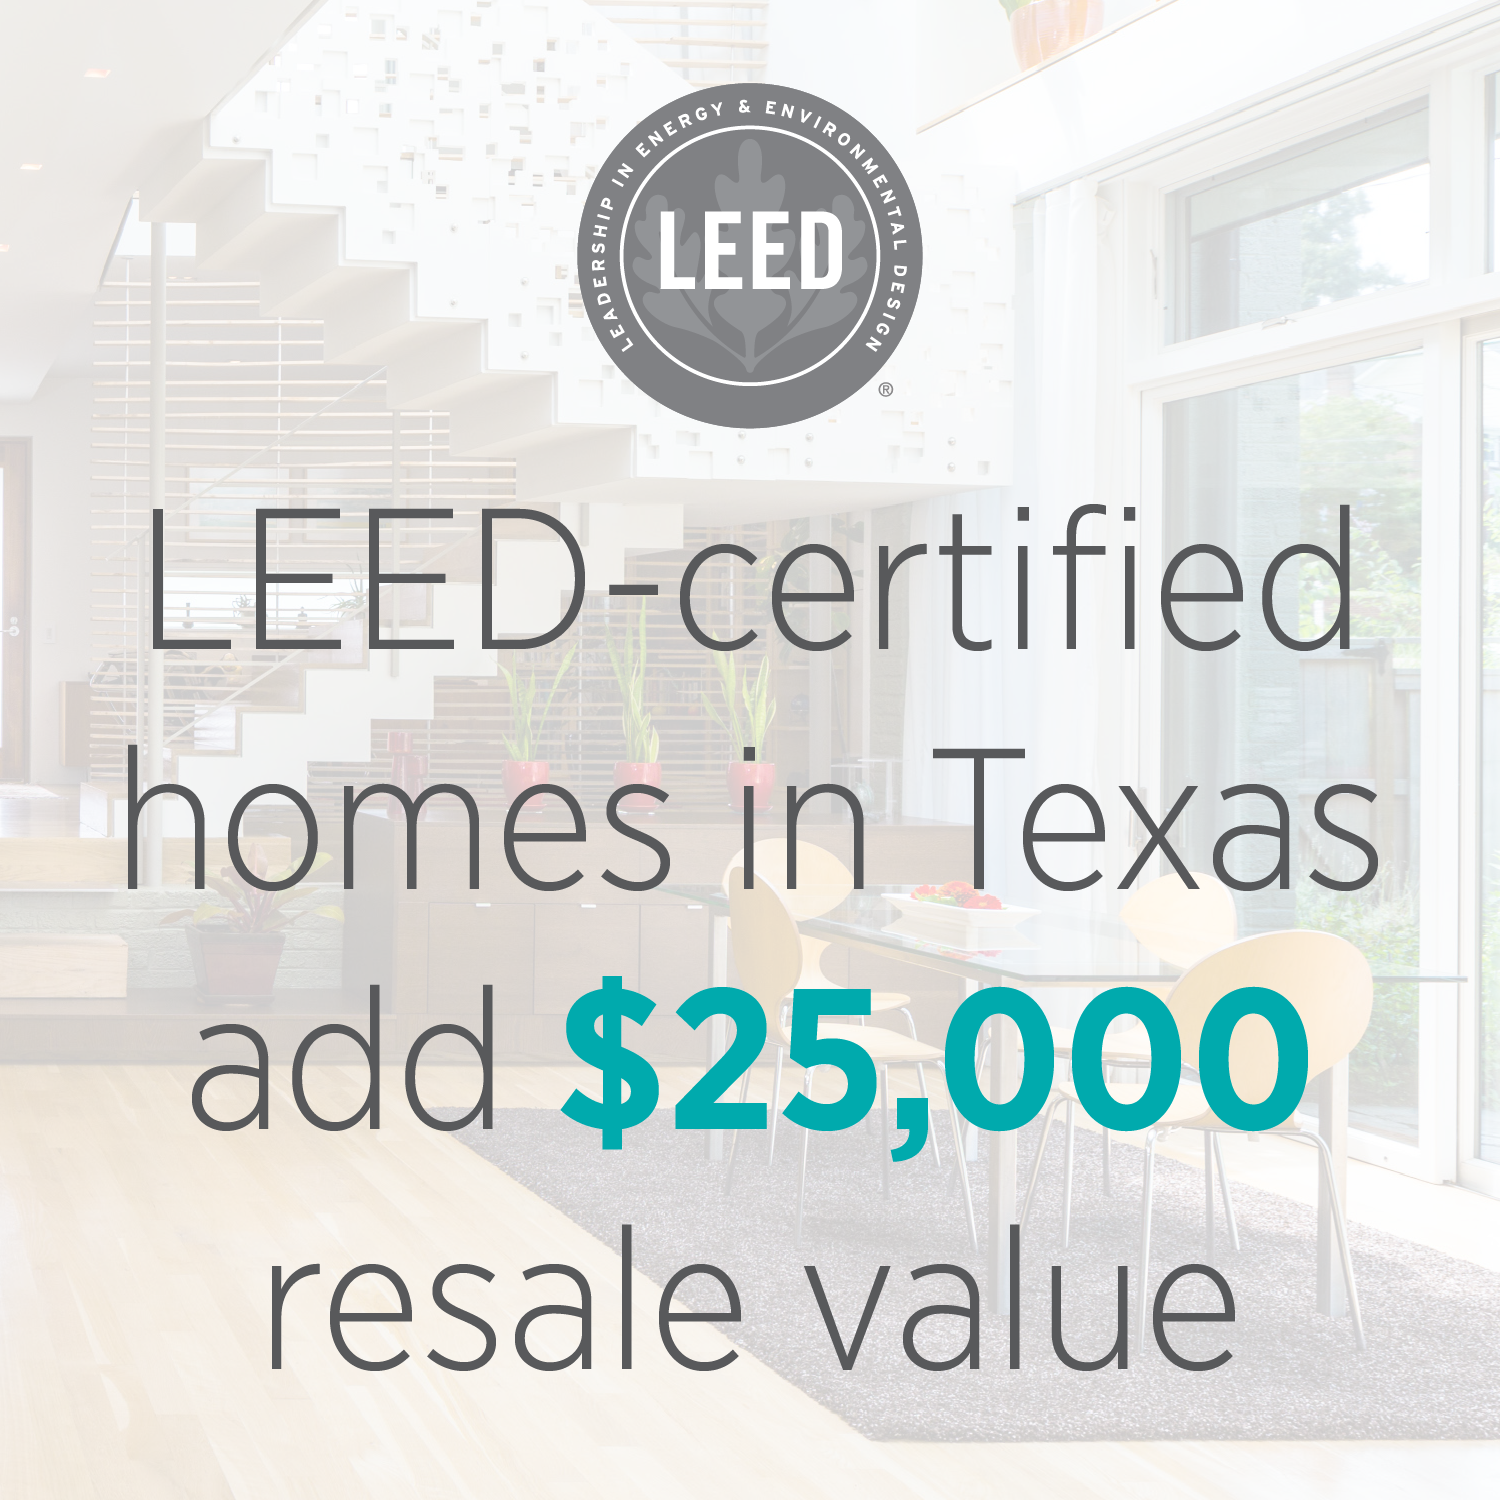 Leed Homes In Austin Round Rock Offer 25 000 More In